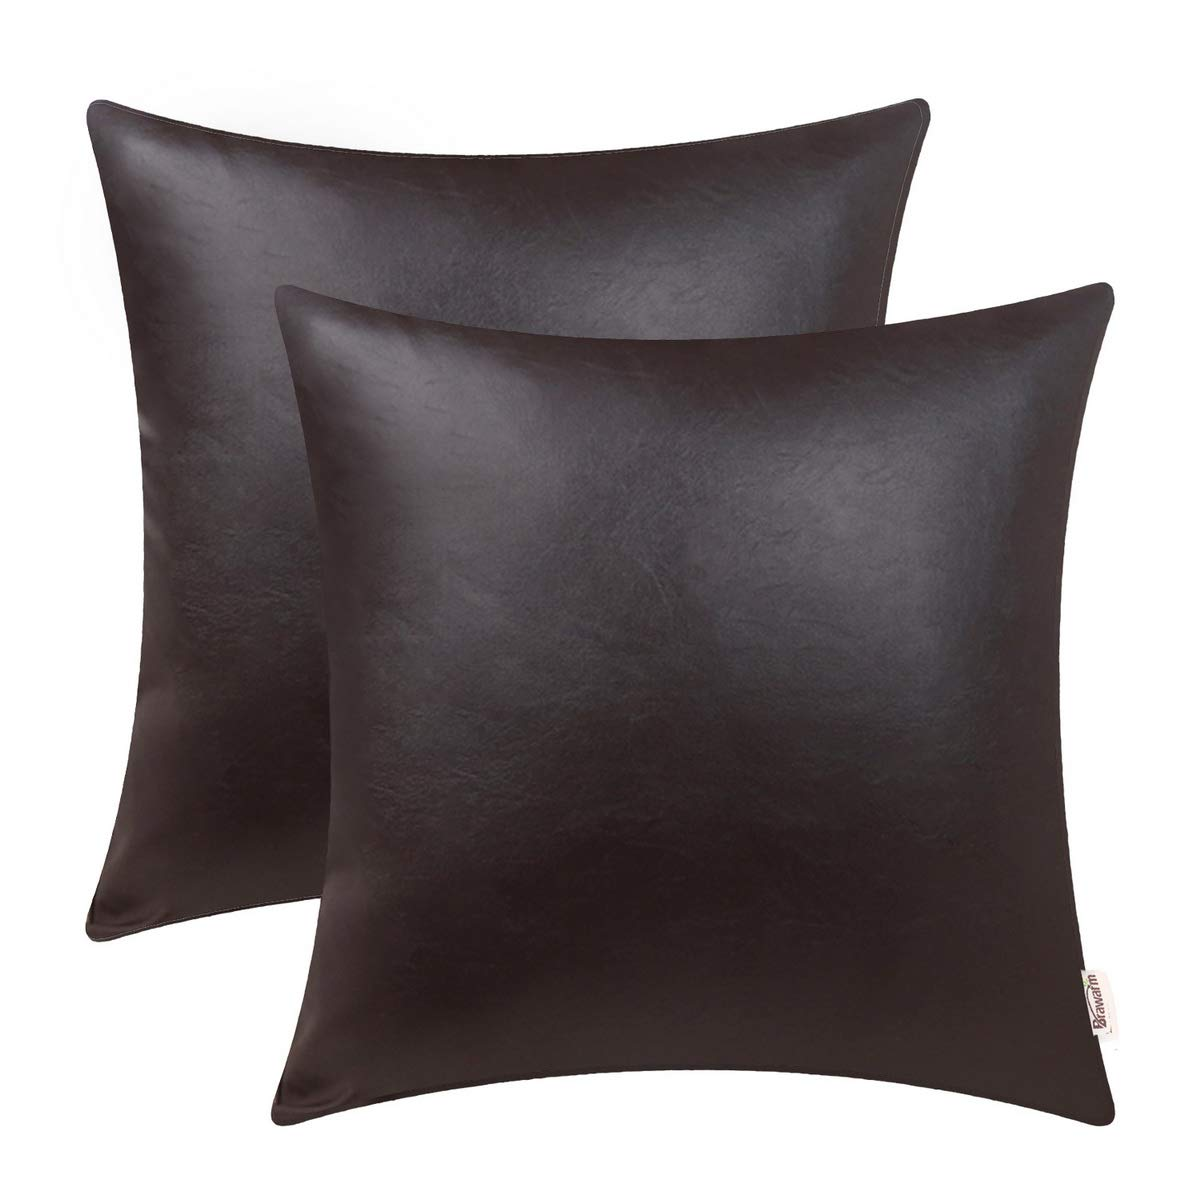 BRAWARM Pack of 2 Cozy Throw Pillow Covers Cases for Couch Sofa Home Decoration Solid Dyed Soft Faux Leather Both Sides 20 X 20 Inches Seal Brown